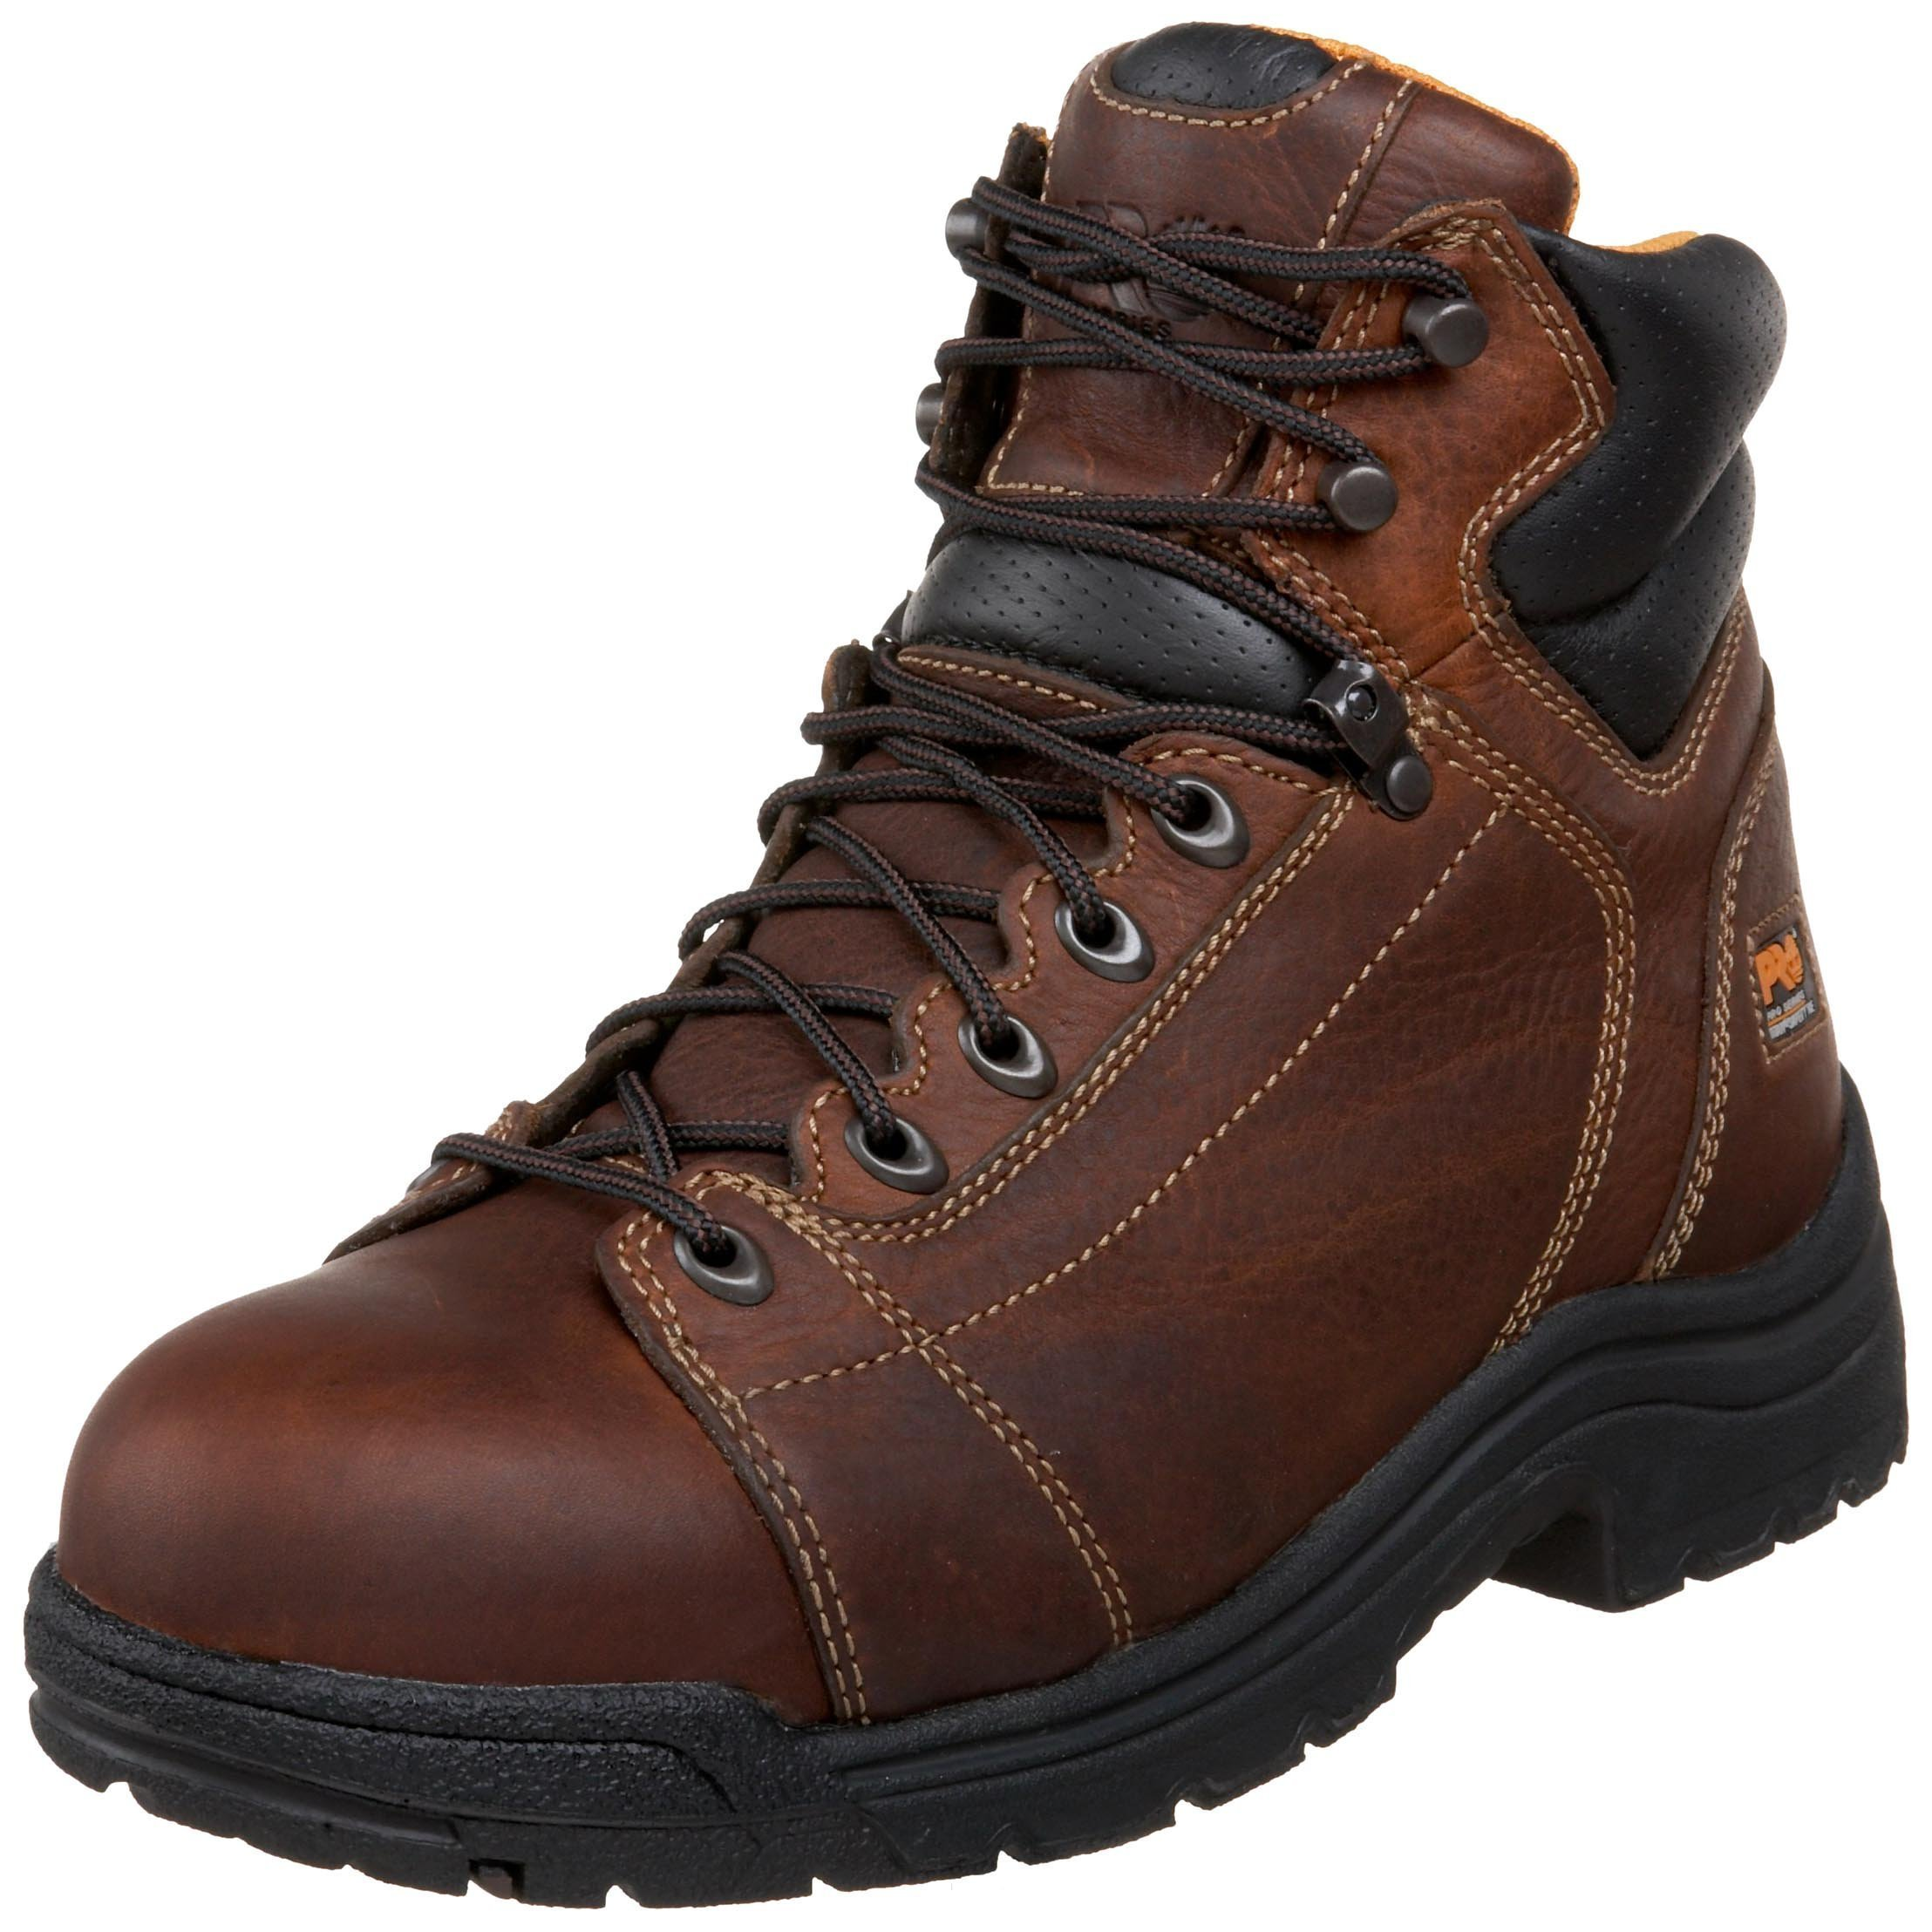 bf57bac25ae5 Timberland PRO 050506242 Men s Titan Safety Boots - Brown product image